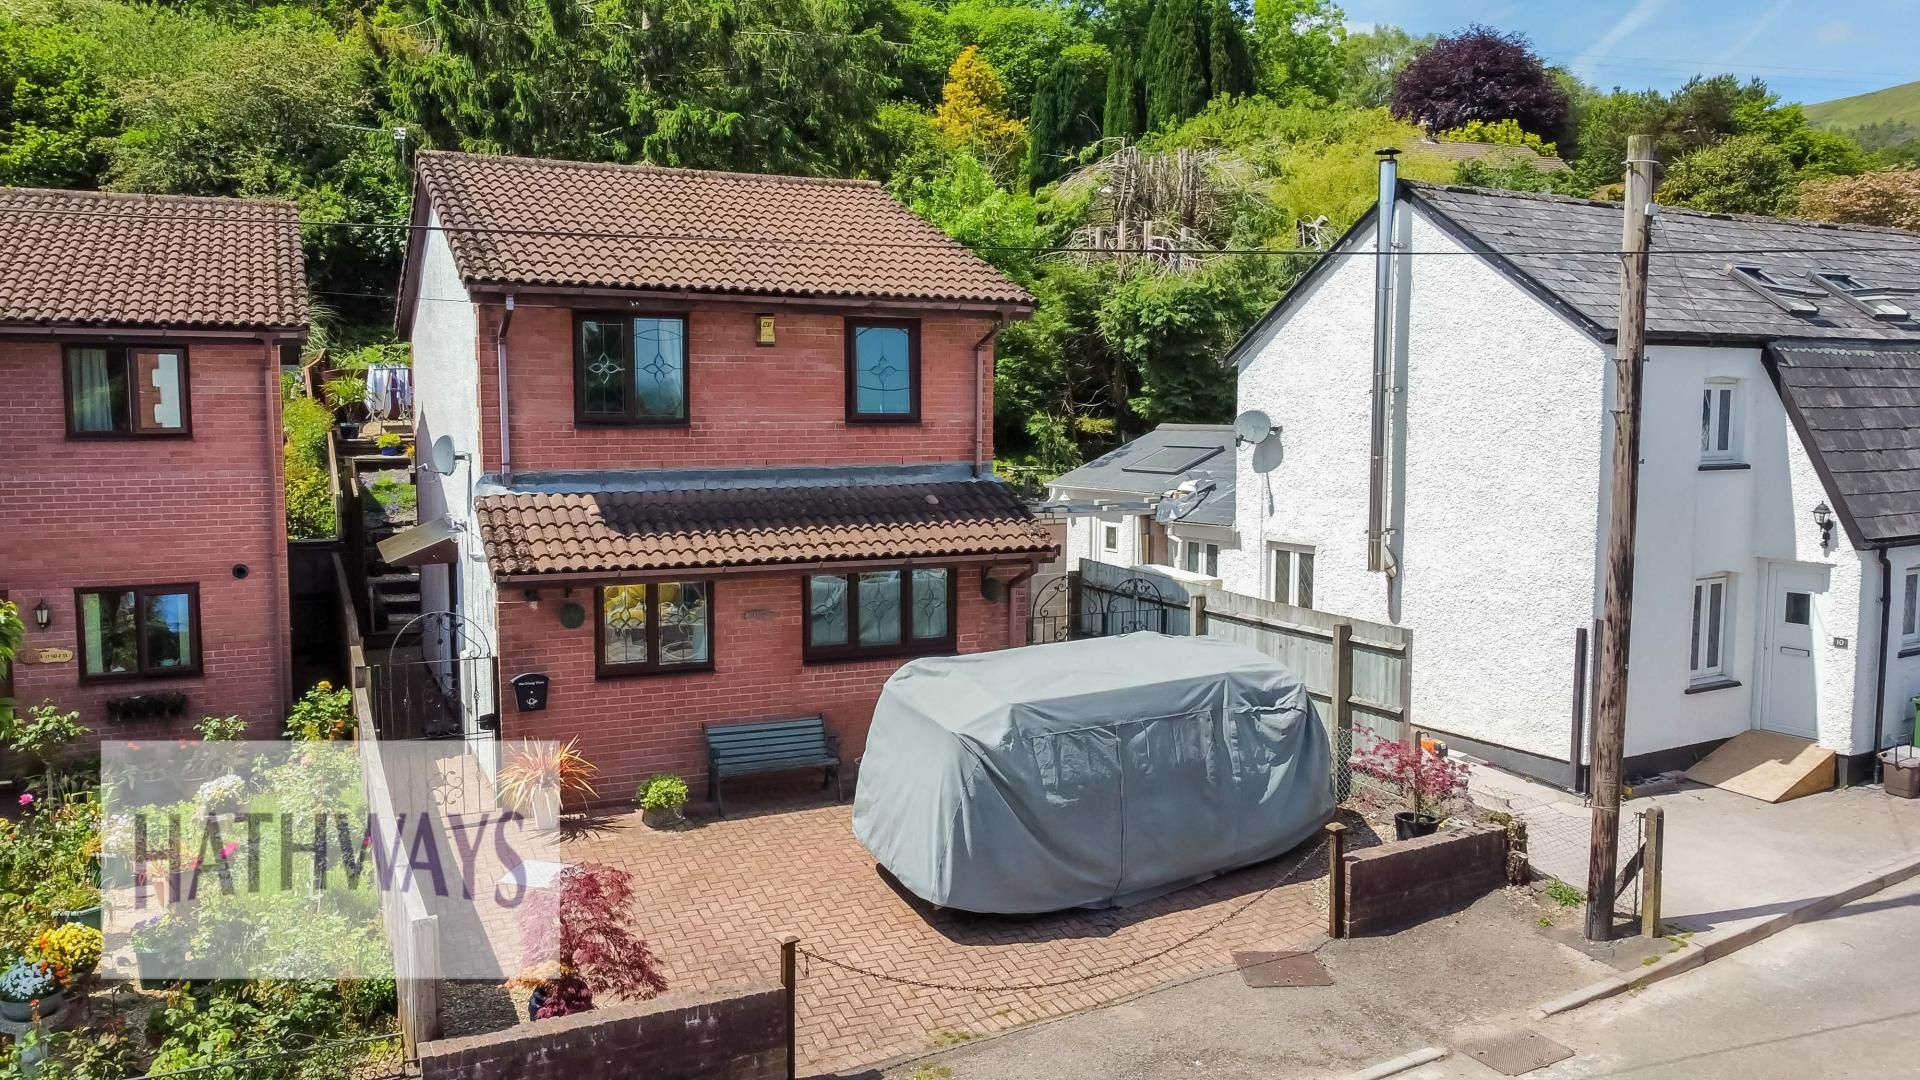 3 bed house for sale in Tram Road, NP44